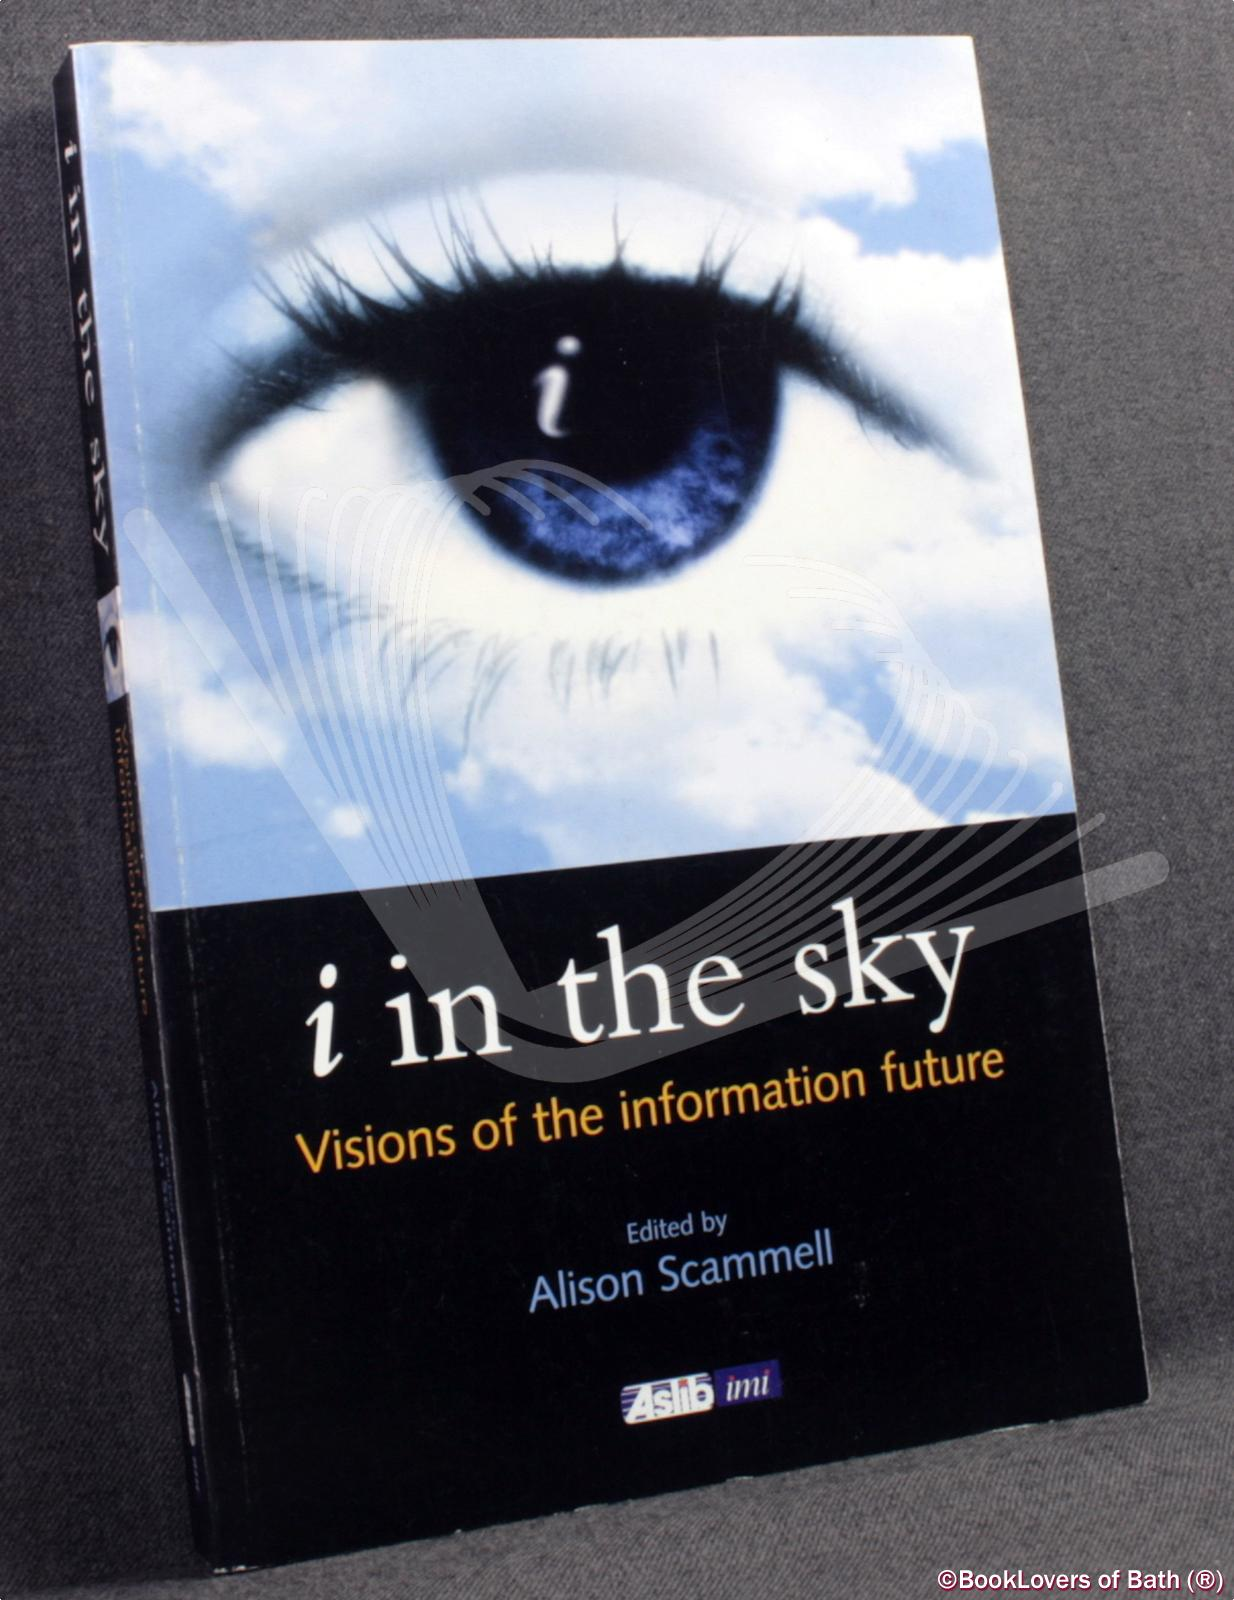 I in the Sky: Visions of the Information Future - Edited by Alison Scammell